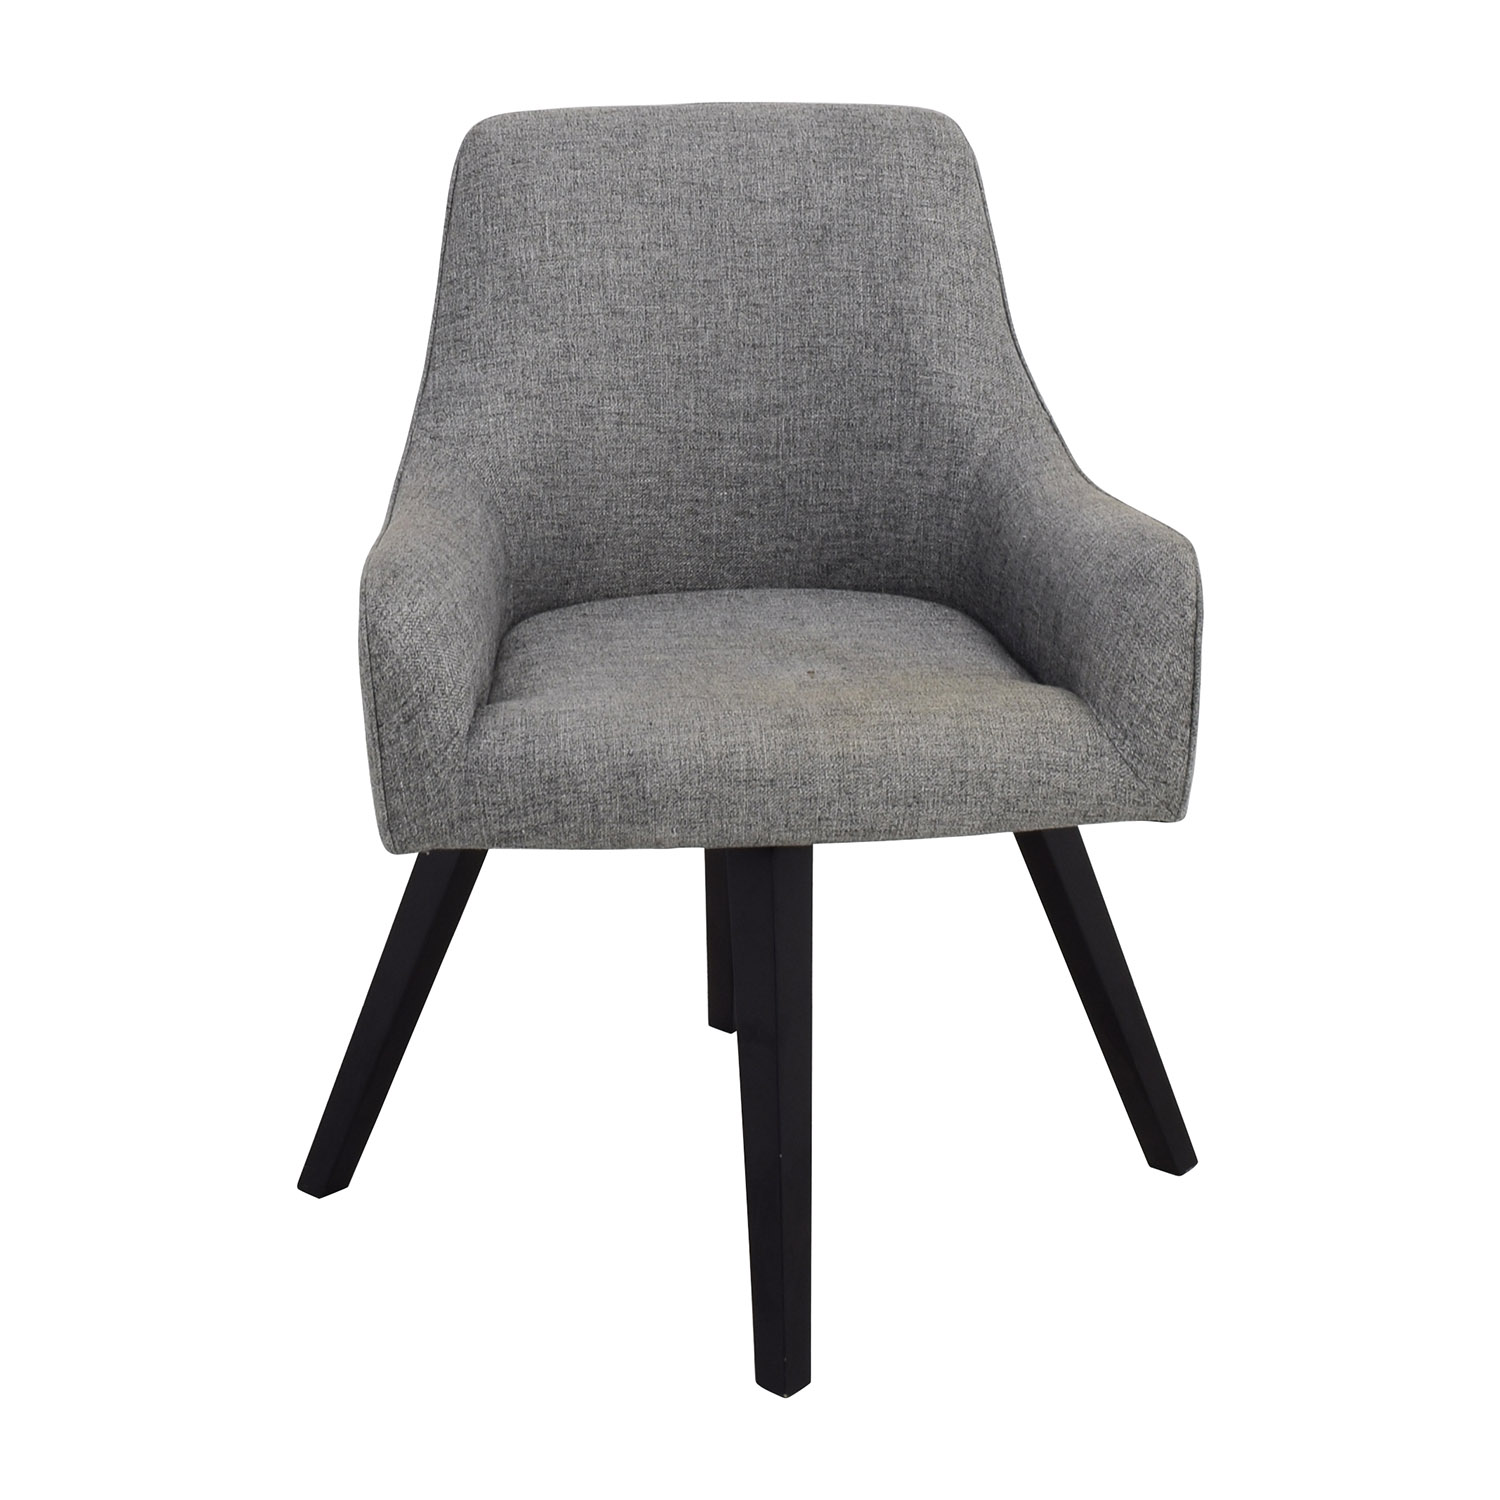 buy CB2 Grey Rounded Accent Chair CB2 Accent Chairs